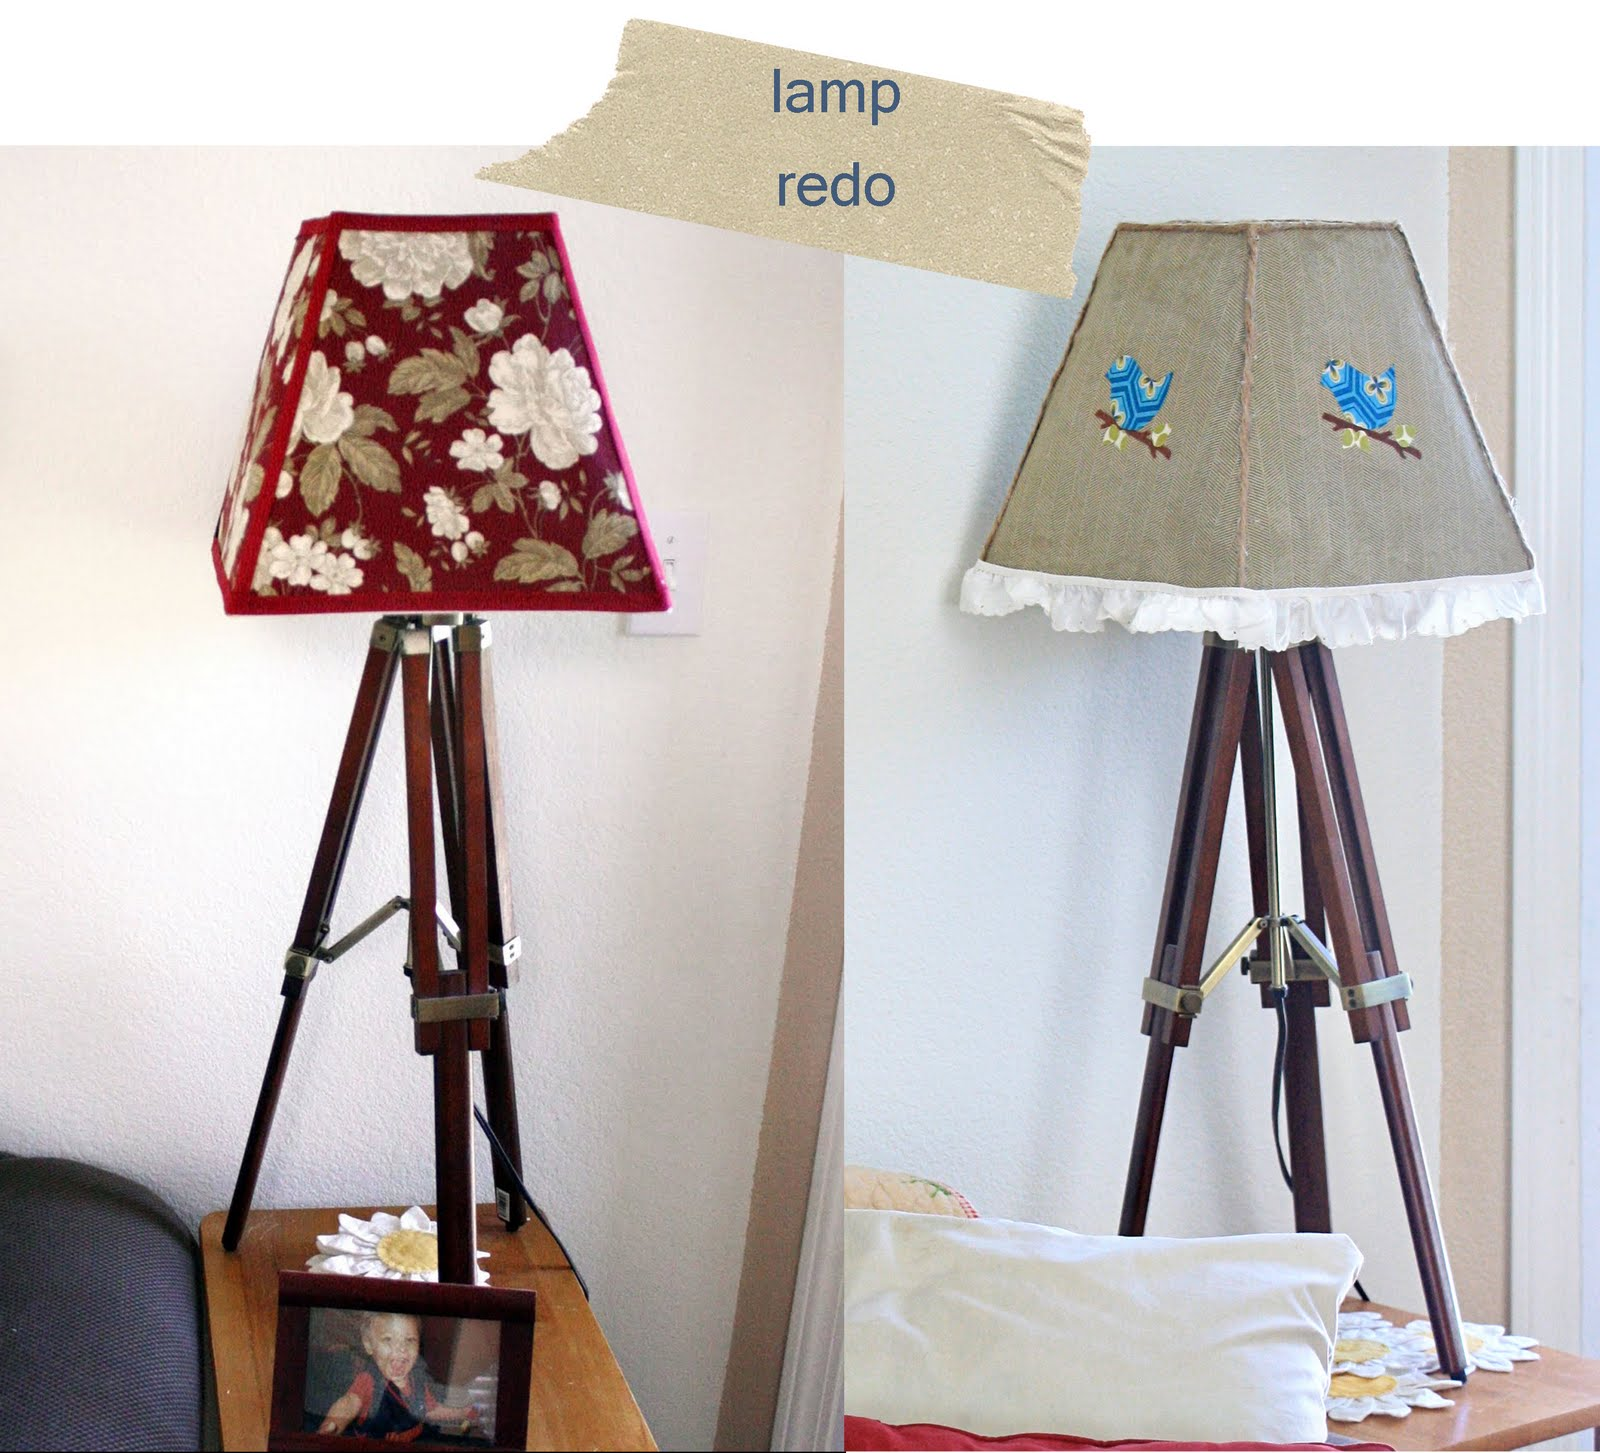 Notes from the plumb tree a lamp shade redo for Redoing lamp shades